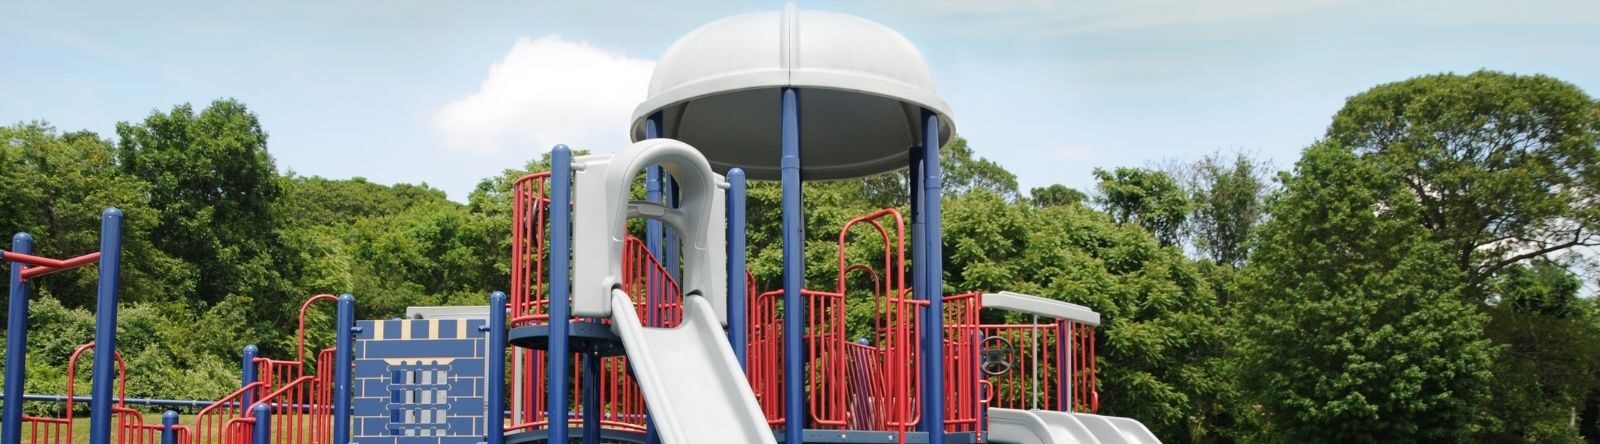 Loose-Fill versus Wet-Pour Rubber Surfacing: Which One's Better for Outdoor Playgrounds?